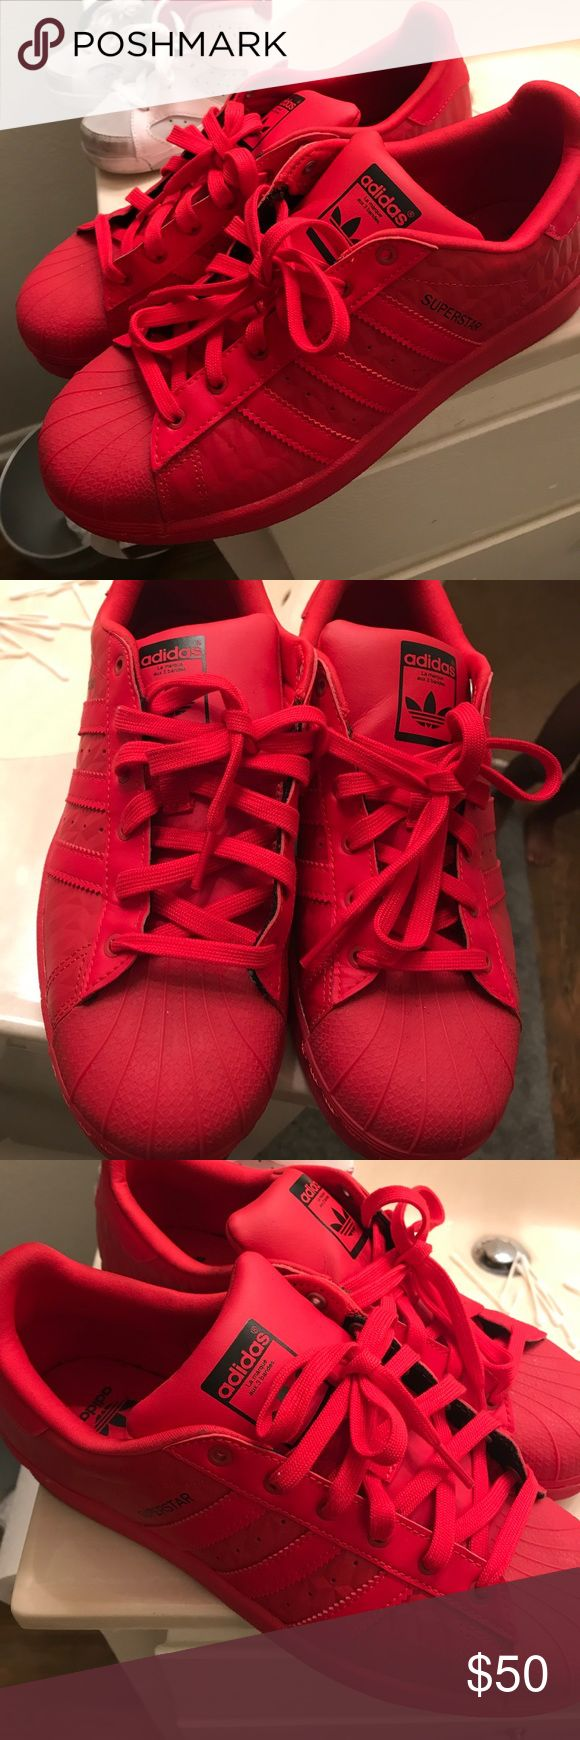 All Red adidas All Red original Adidas worn once size 7 in men's adidas Shoes Athletic Shoes